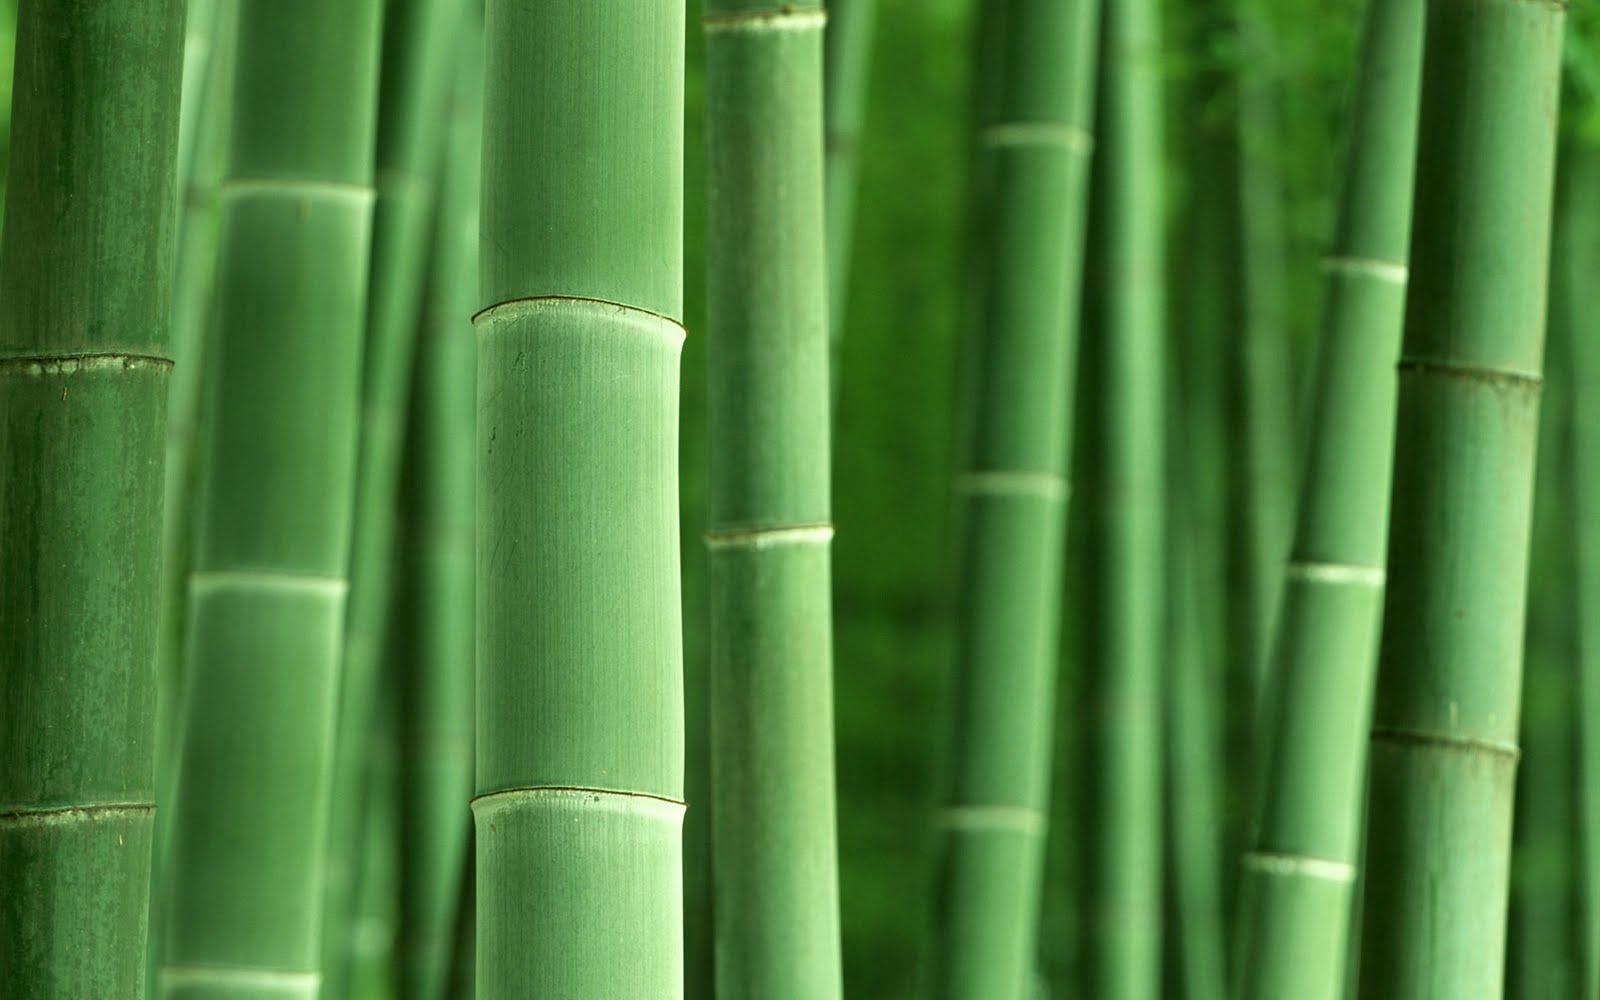 Hq wallpapers bamboo forest high definition pictures for Bamboo wallpaper